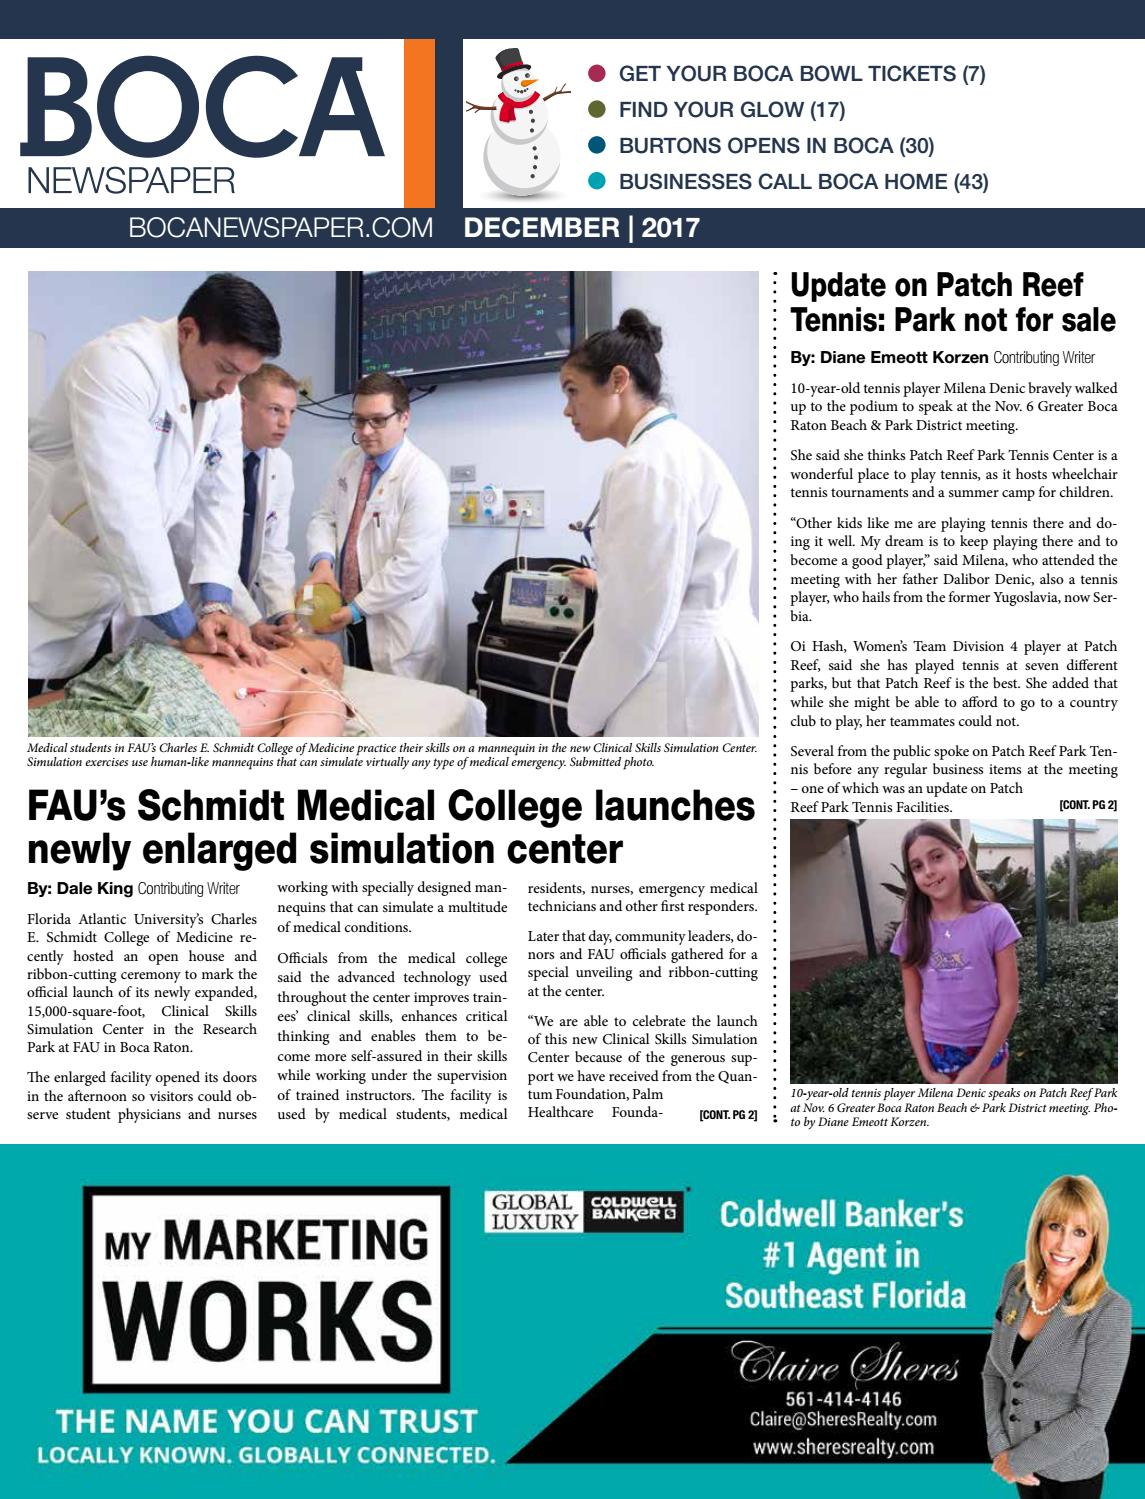 Boca Newspaper | December 2017 by Four Story Media Group - issuu on